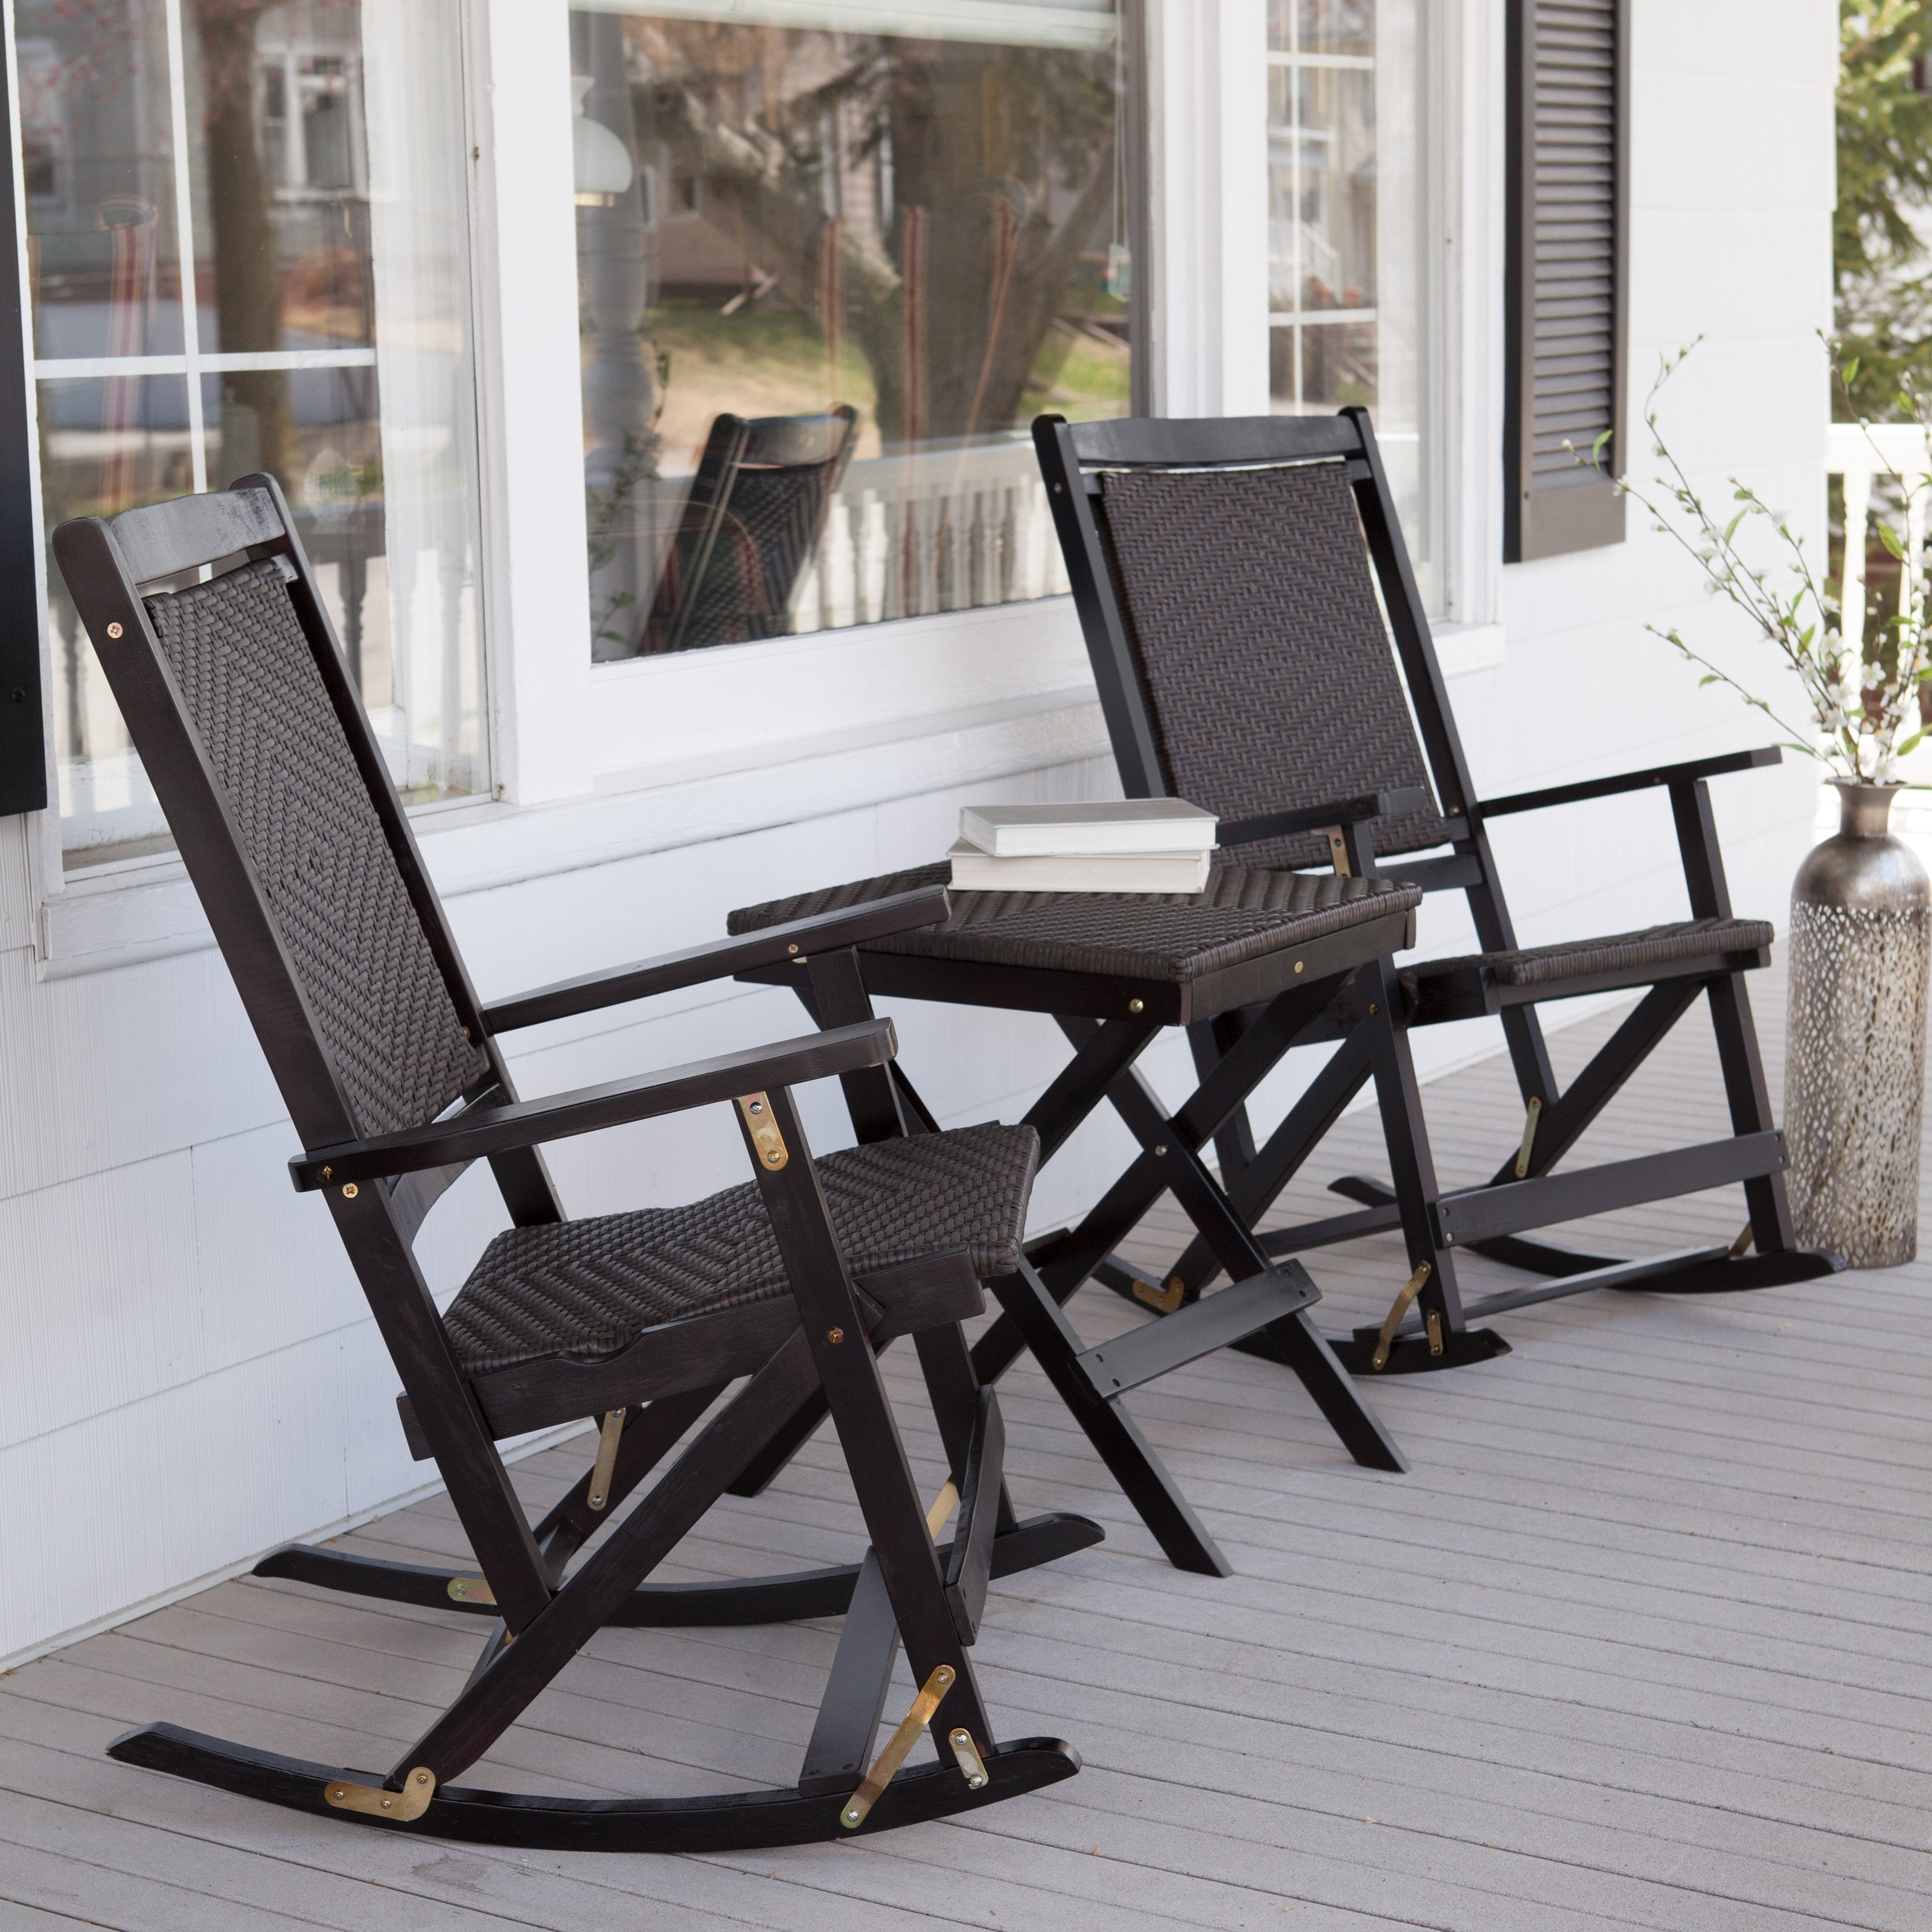 Wonderful Black Wicker Rocking Chairs Chair Sofa Bed Sleeper With Within Newest Patio Rocking Chairs With Ottoman (View 20 of 20)